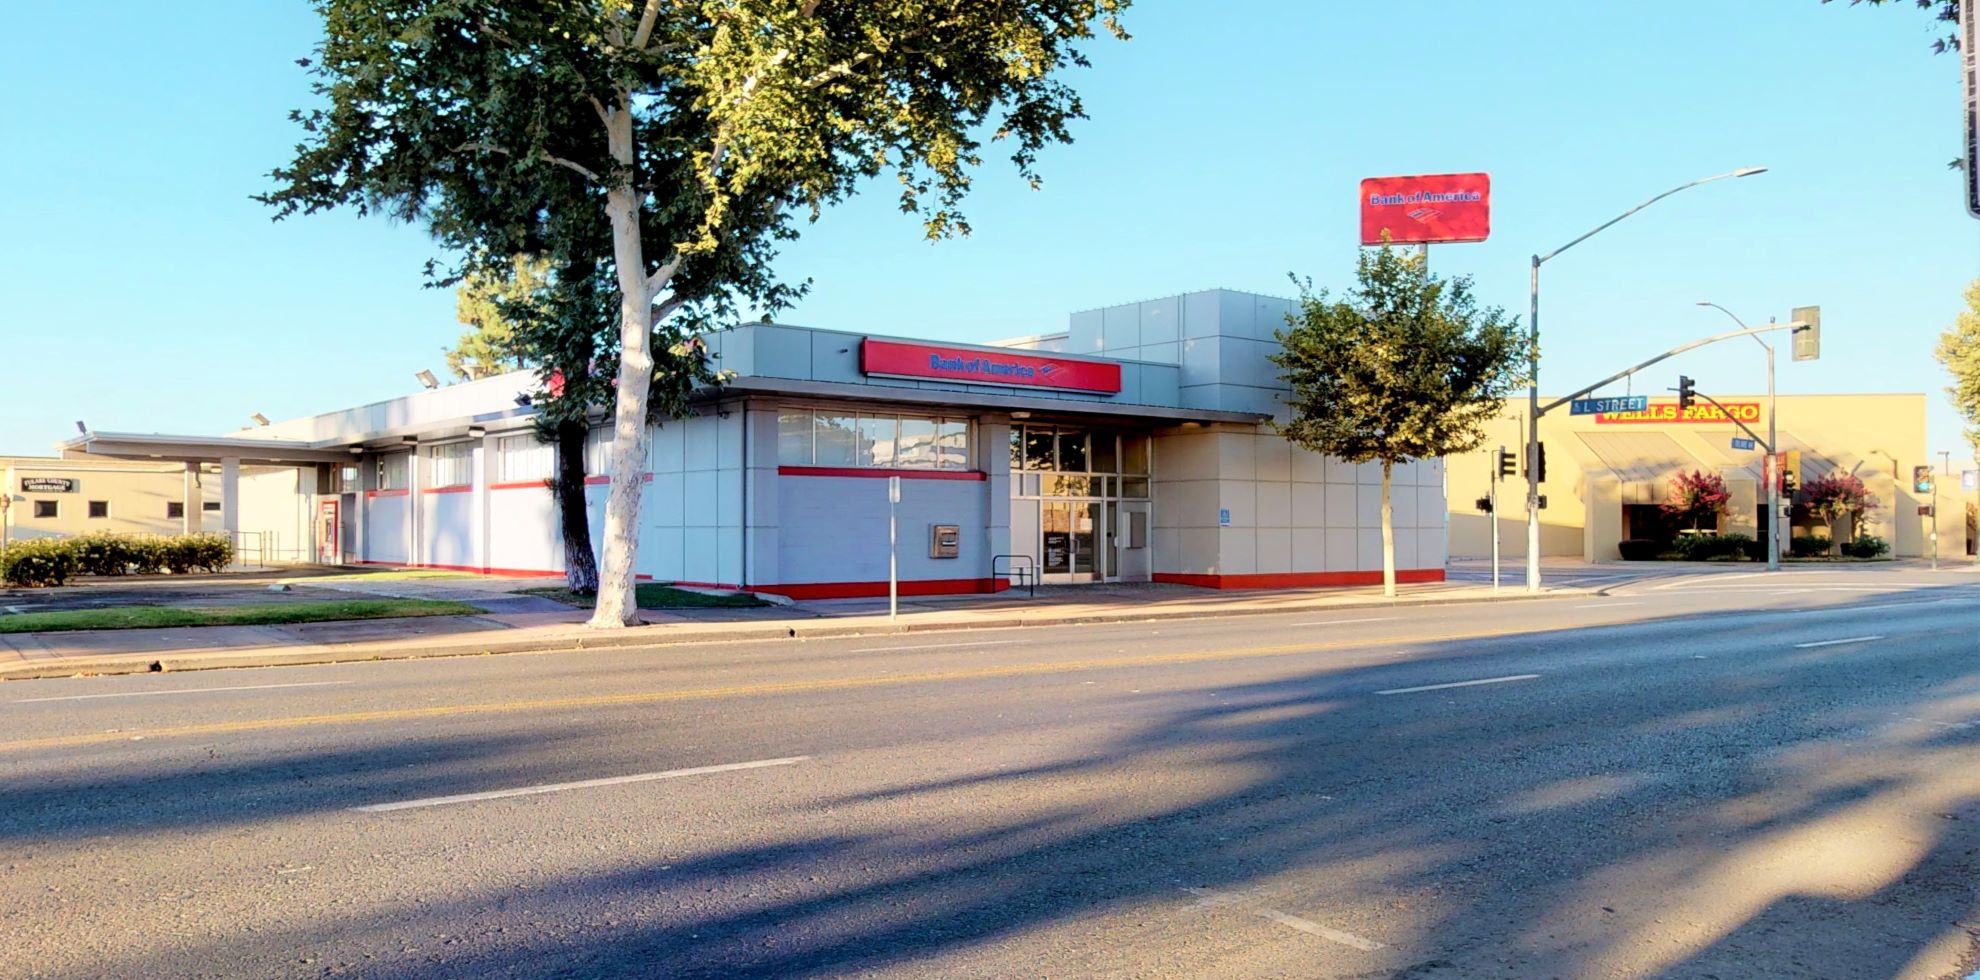 Bank of America financial center with drive-thru ATM | 303 E Tulare Ave, Tulare, CA 93274